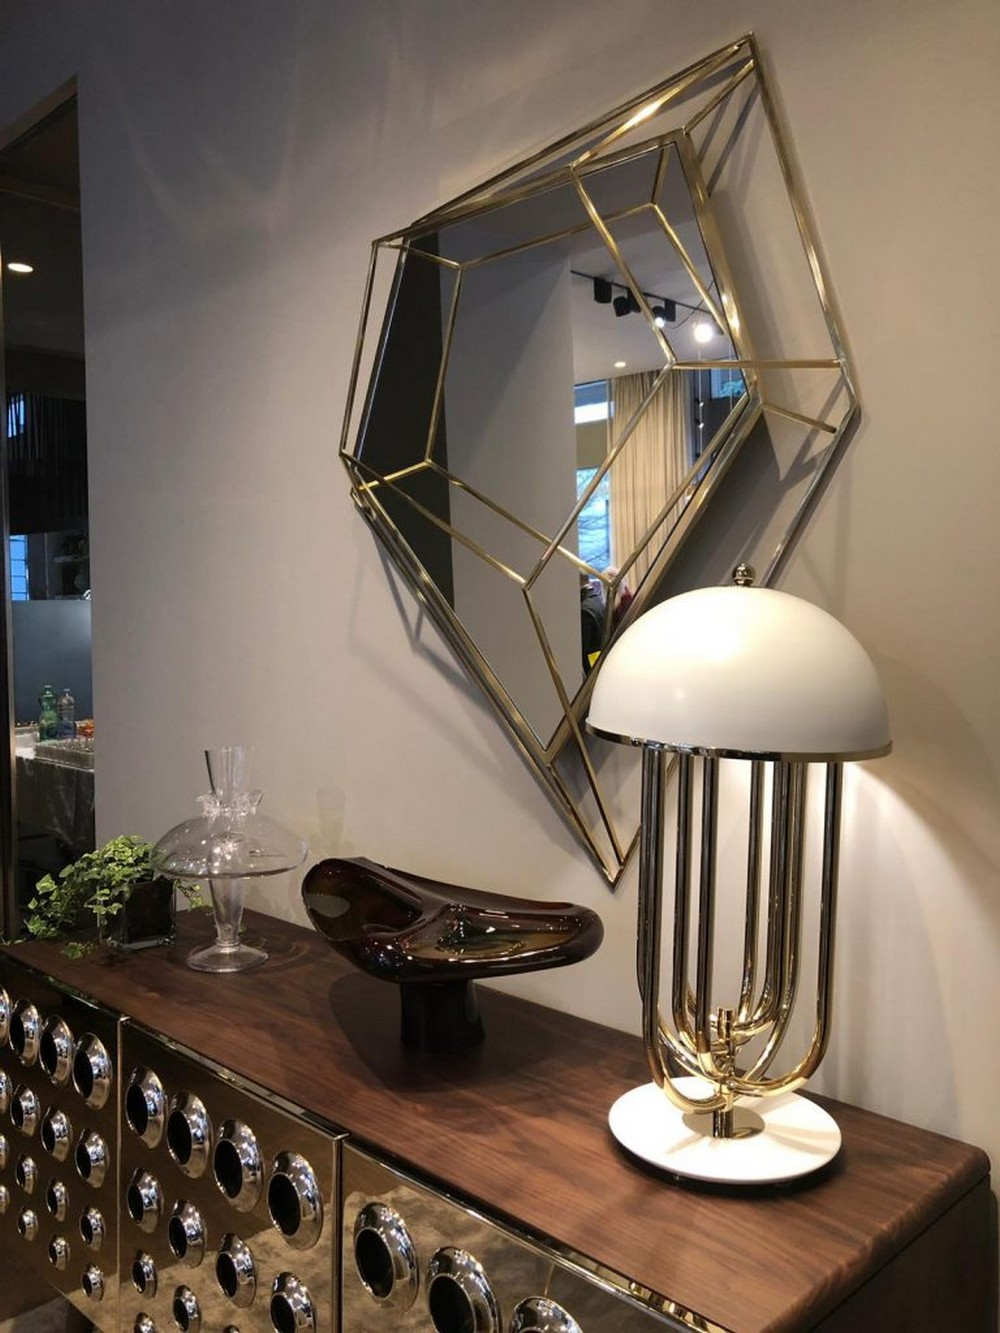 Bredaquaranta Showroom Sets The 2019 Design Trends In Milan bredaquaranta showroom Bredaquaranta Showroom Sets The 2019 Design Trends In Milan Bredaquaranta Showroom Sets The 2019 Design Trends In Milan 3